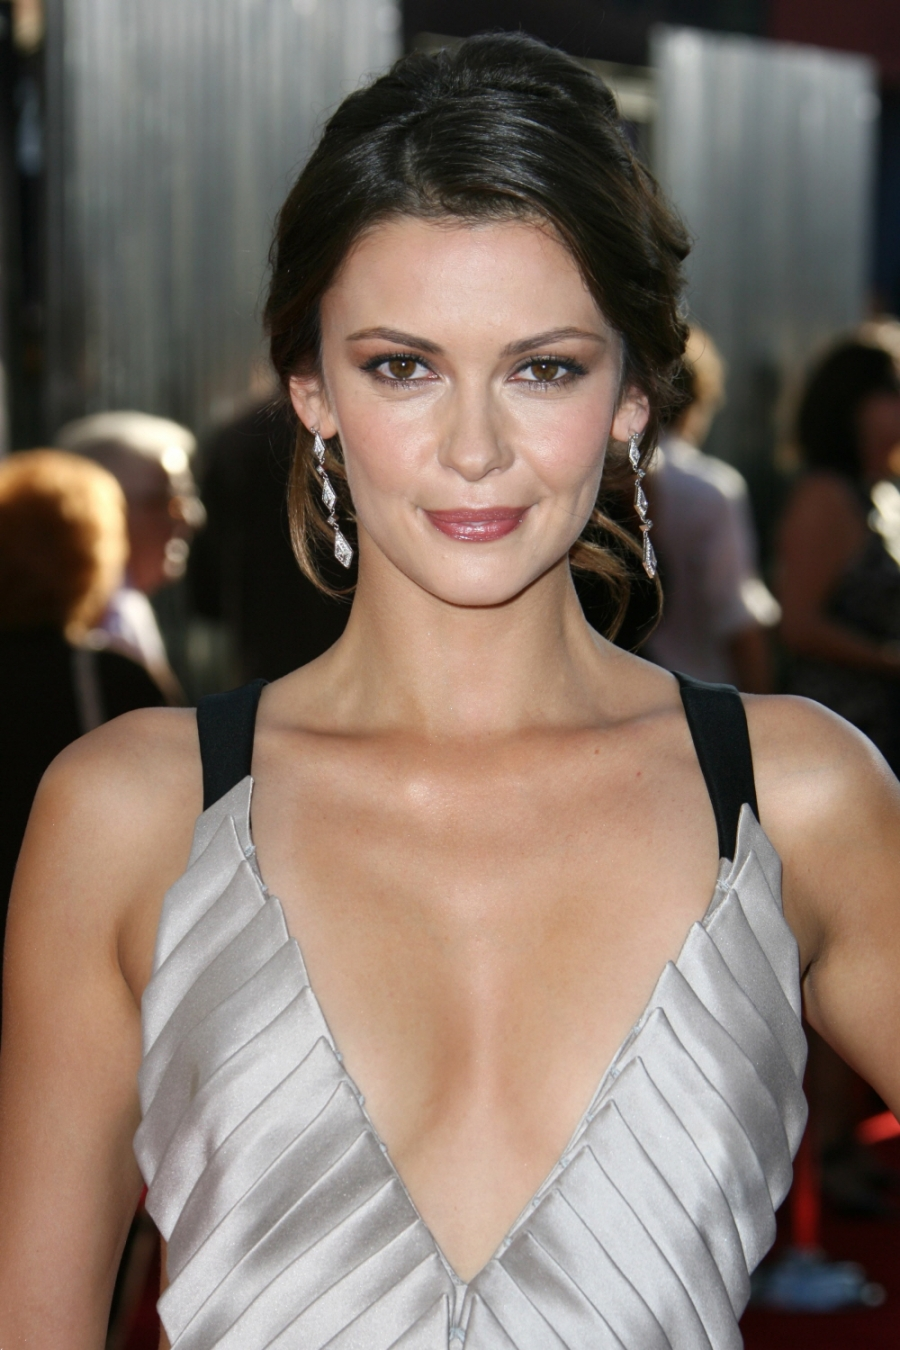 olga fonda wikipediaolga fonda twitter, olga fonda photoshoot, olga fonda esquire, olga fonda how i met your mother, olga fonda wikipedia, olga fonda bellazon, olga fonda instagram, olga fonda tumblr, olga fonda measurement, olga fonda, olga fonda wiki, olga fonda imdb, olga fonda bio, olga fonda breaking dawn, olga fonda facebook